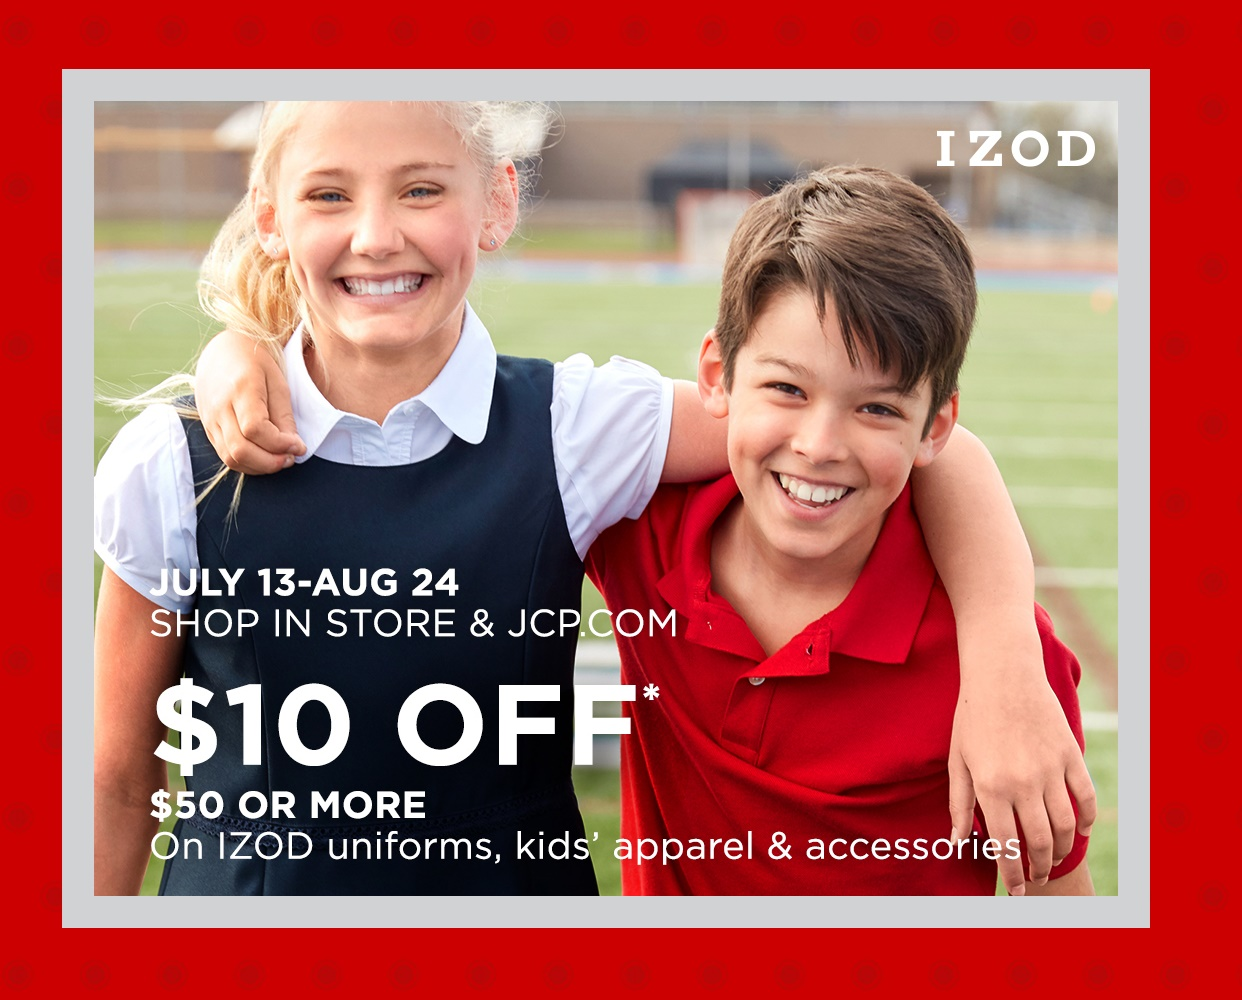 JCPenney $10 Off $50 or More*